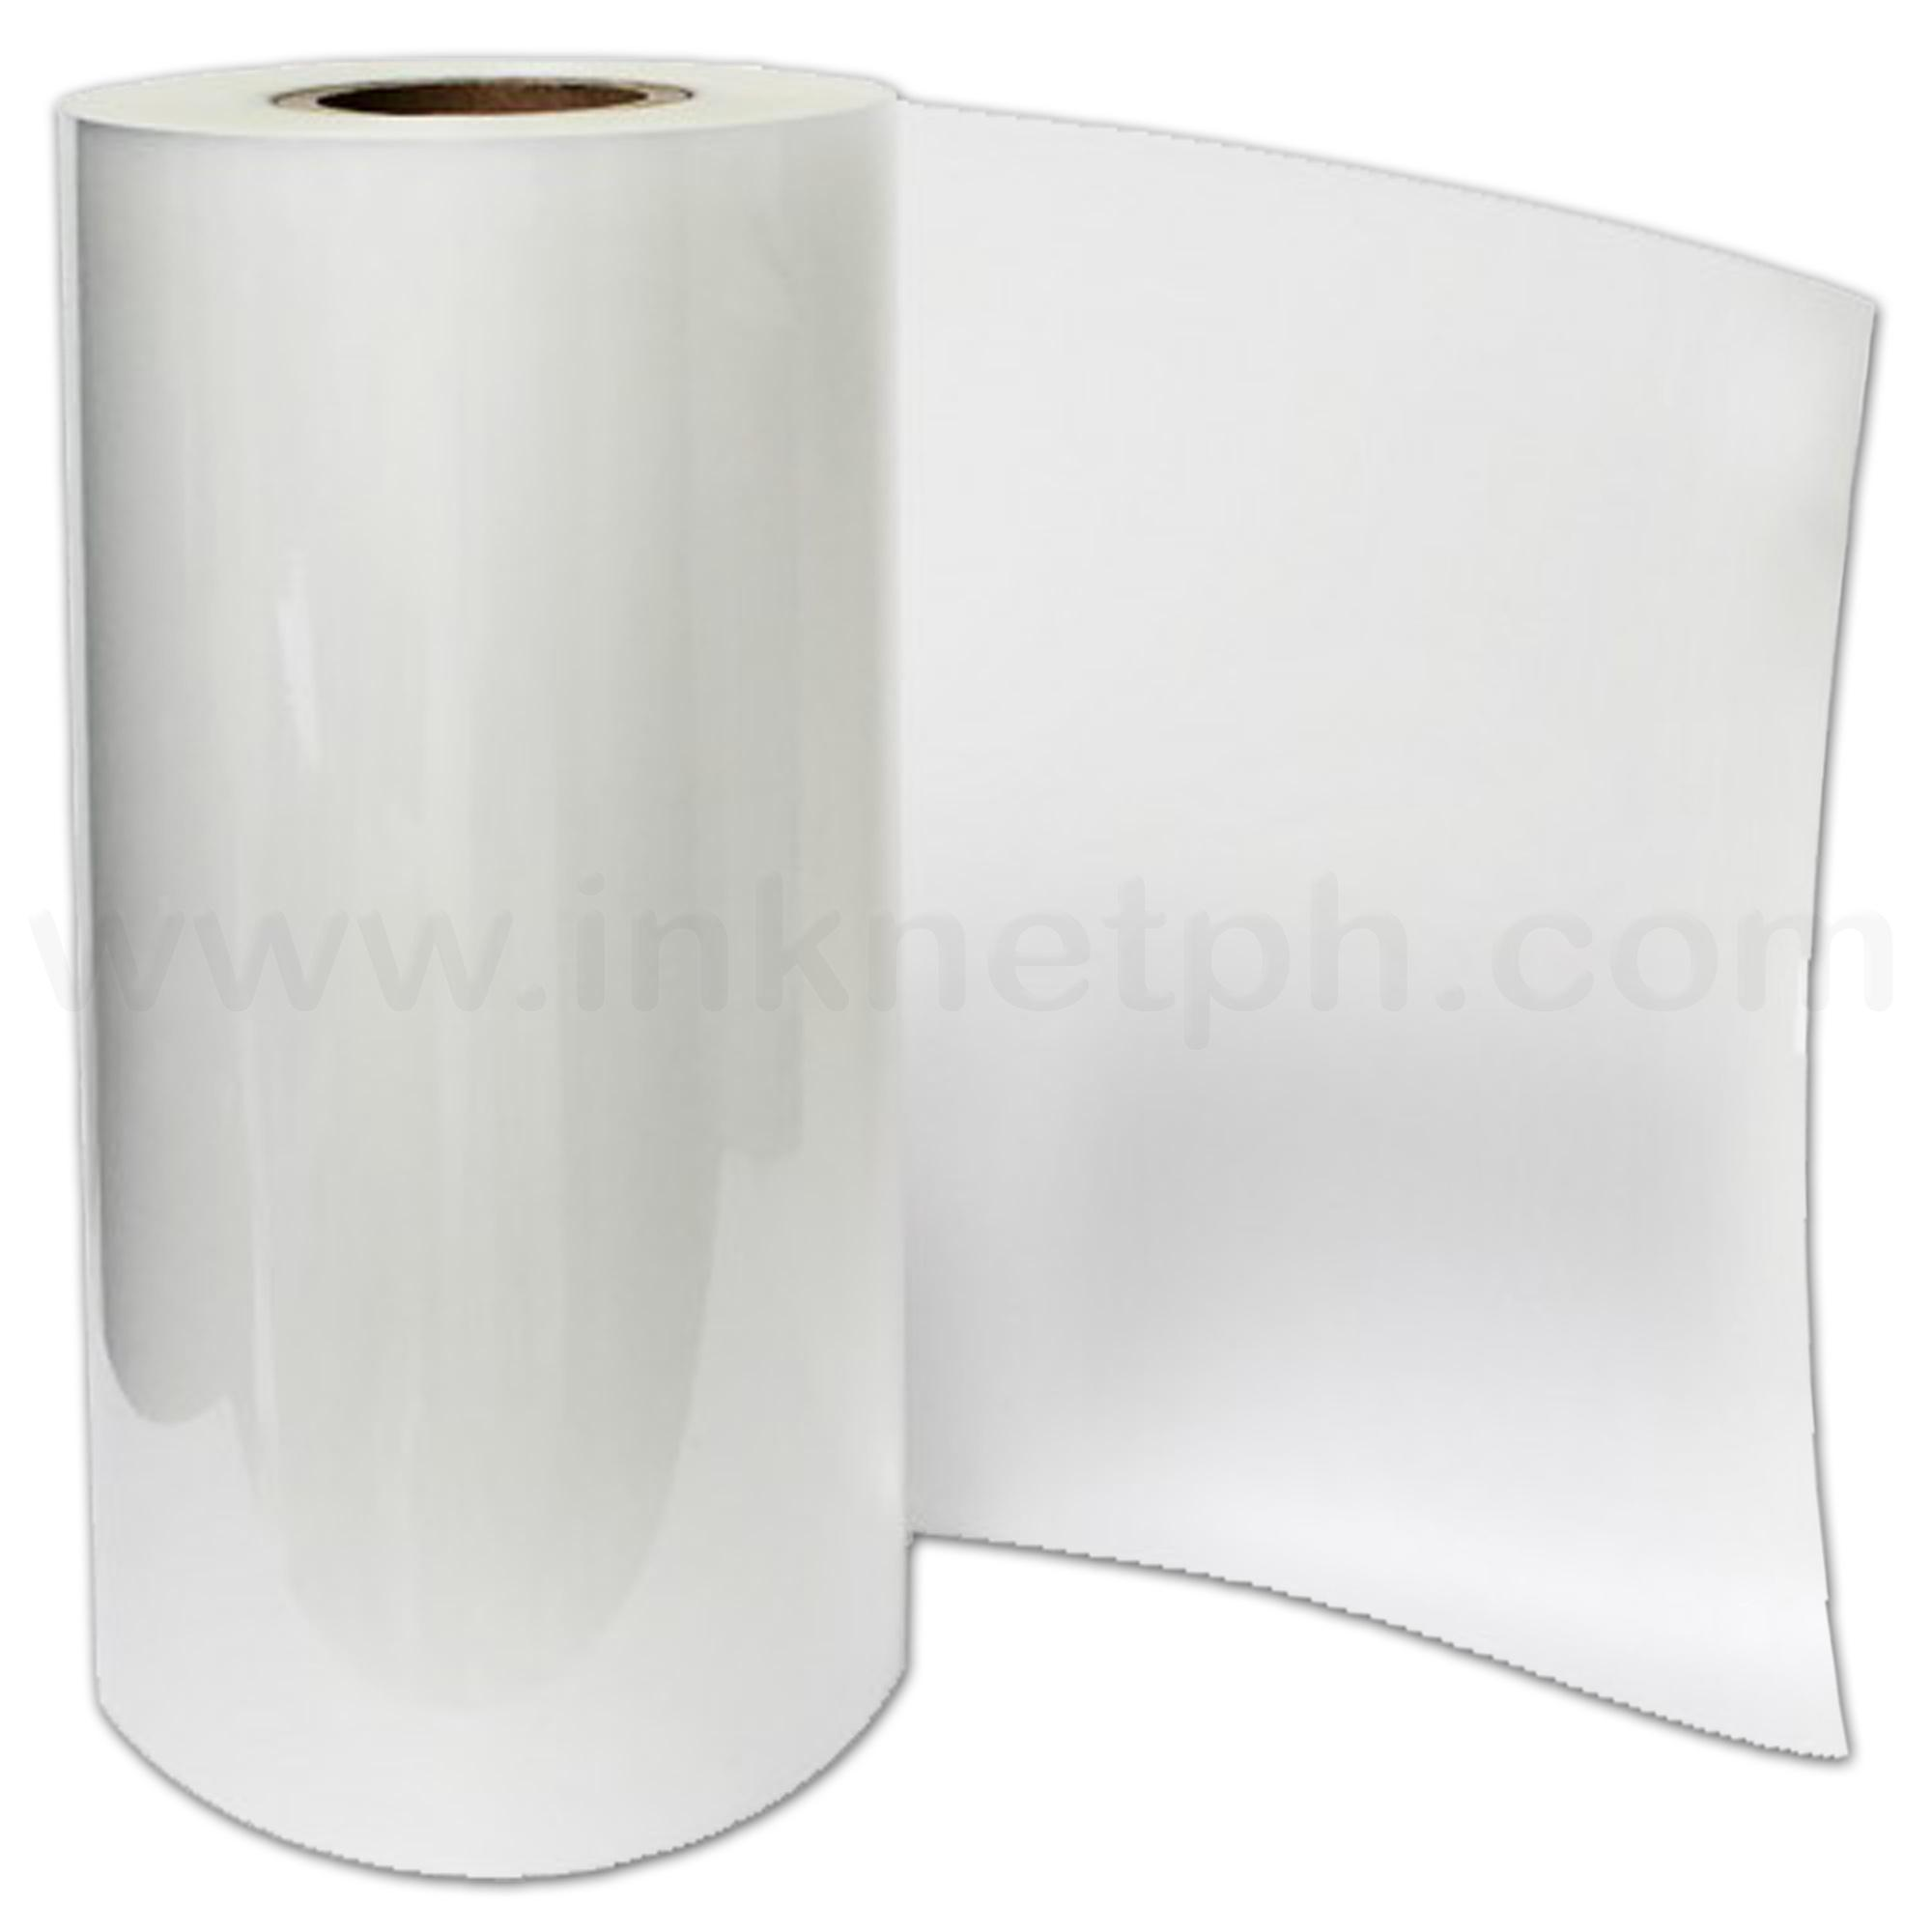 Roll Laminating Film 9in x 100m 125mic (Clear)